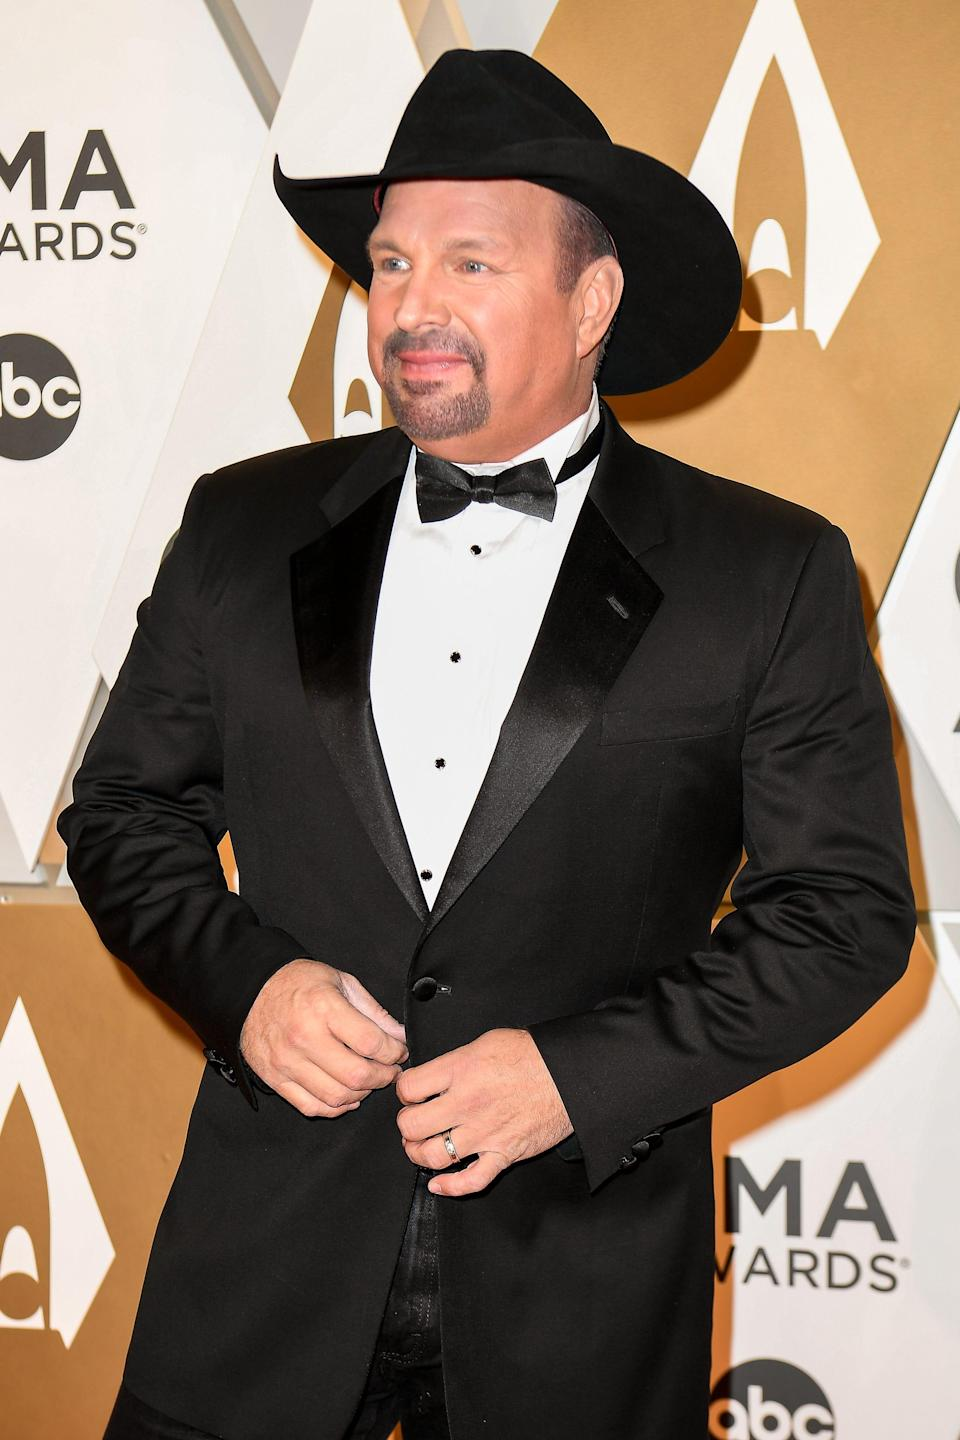 Garth Brooks, seen here on the red carpet at the 53rd annual CMA Awards in 2019, will perform at President-elect Joe Biden's inauguration on Wednesday.